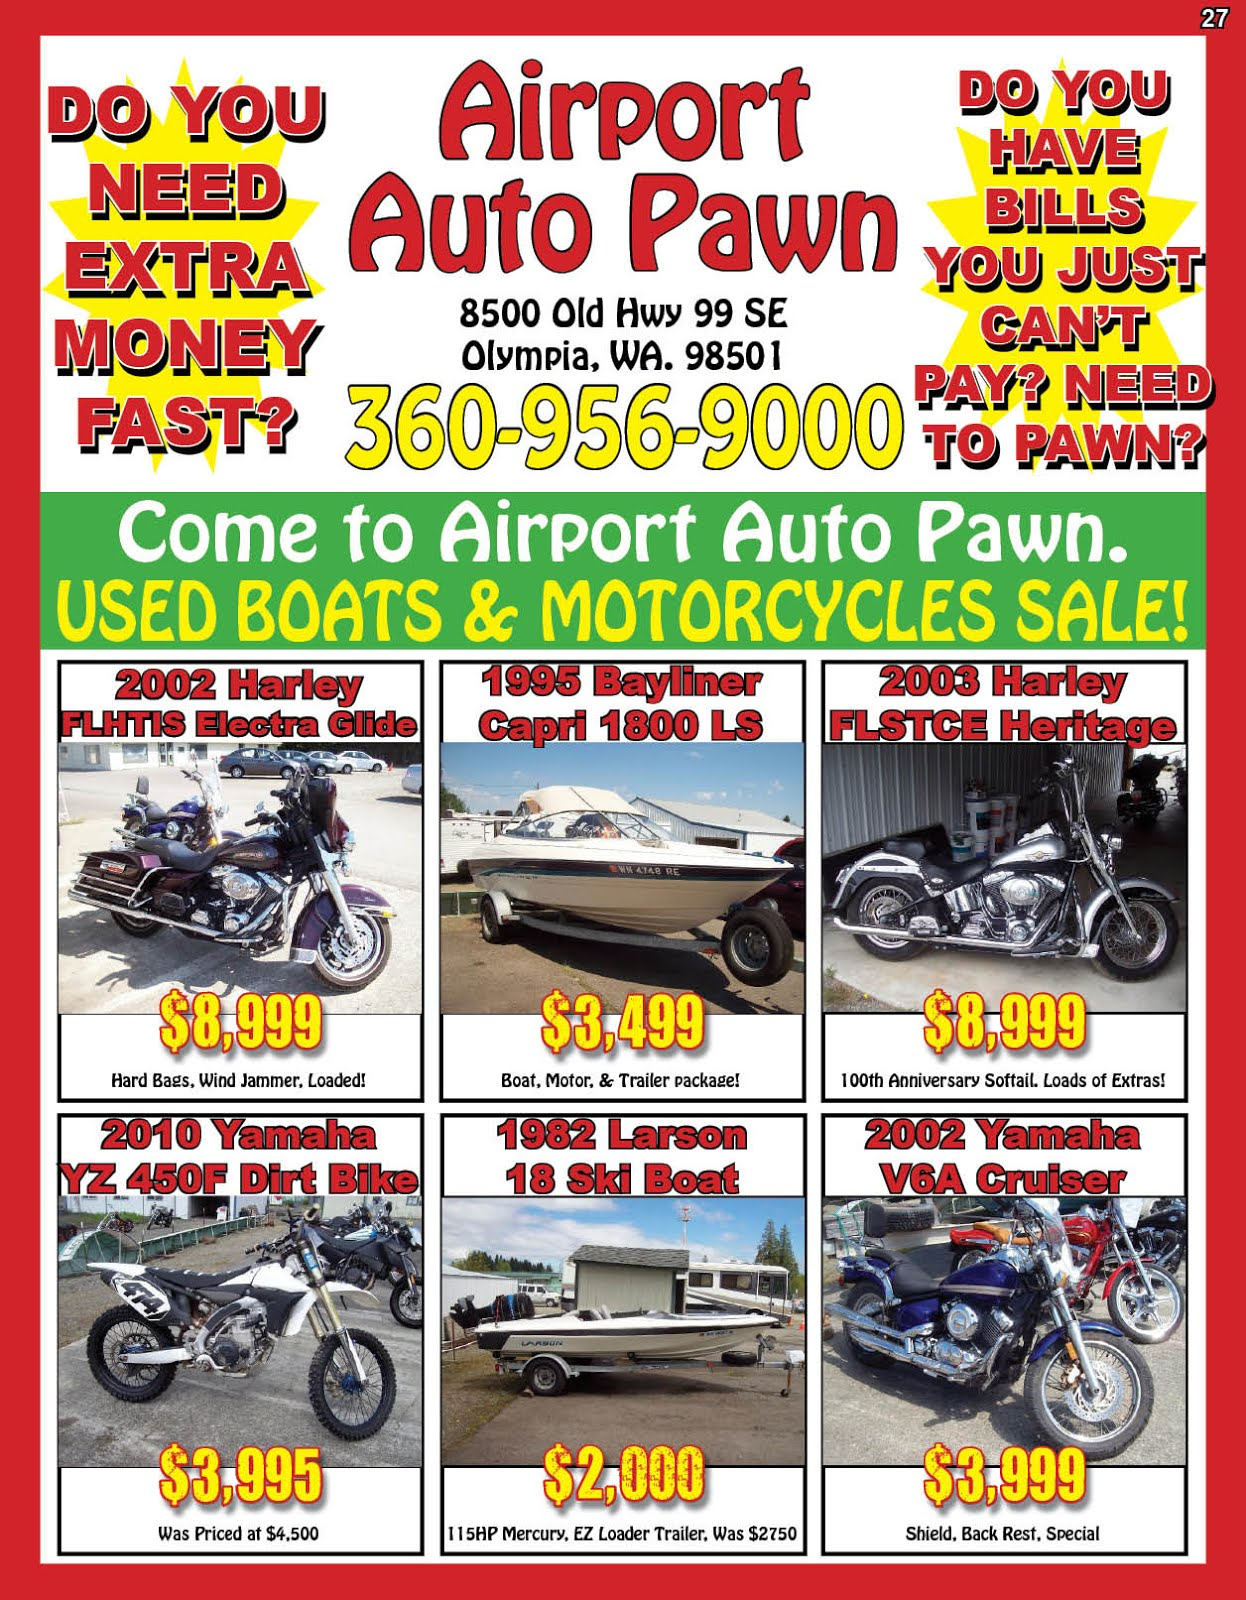 Airport Auto Pawn Used Boats & Motorcycle Sale!!